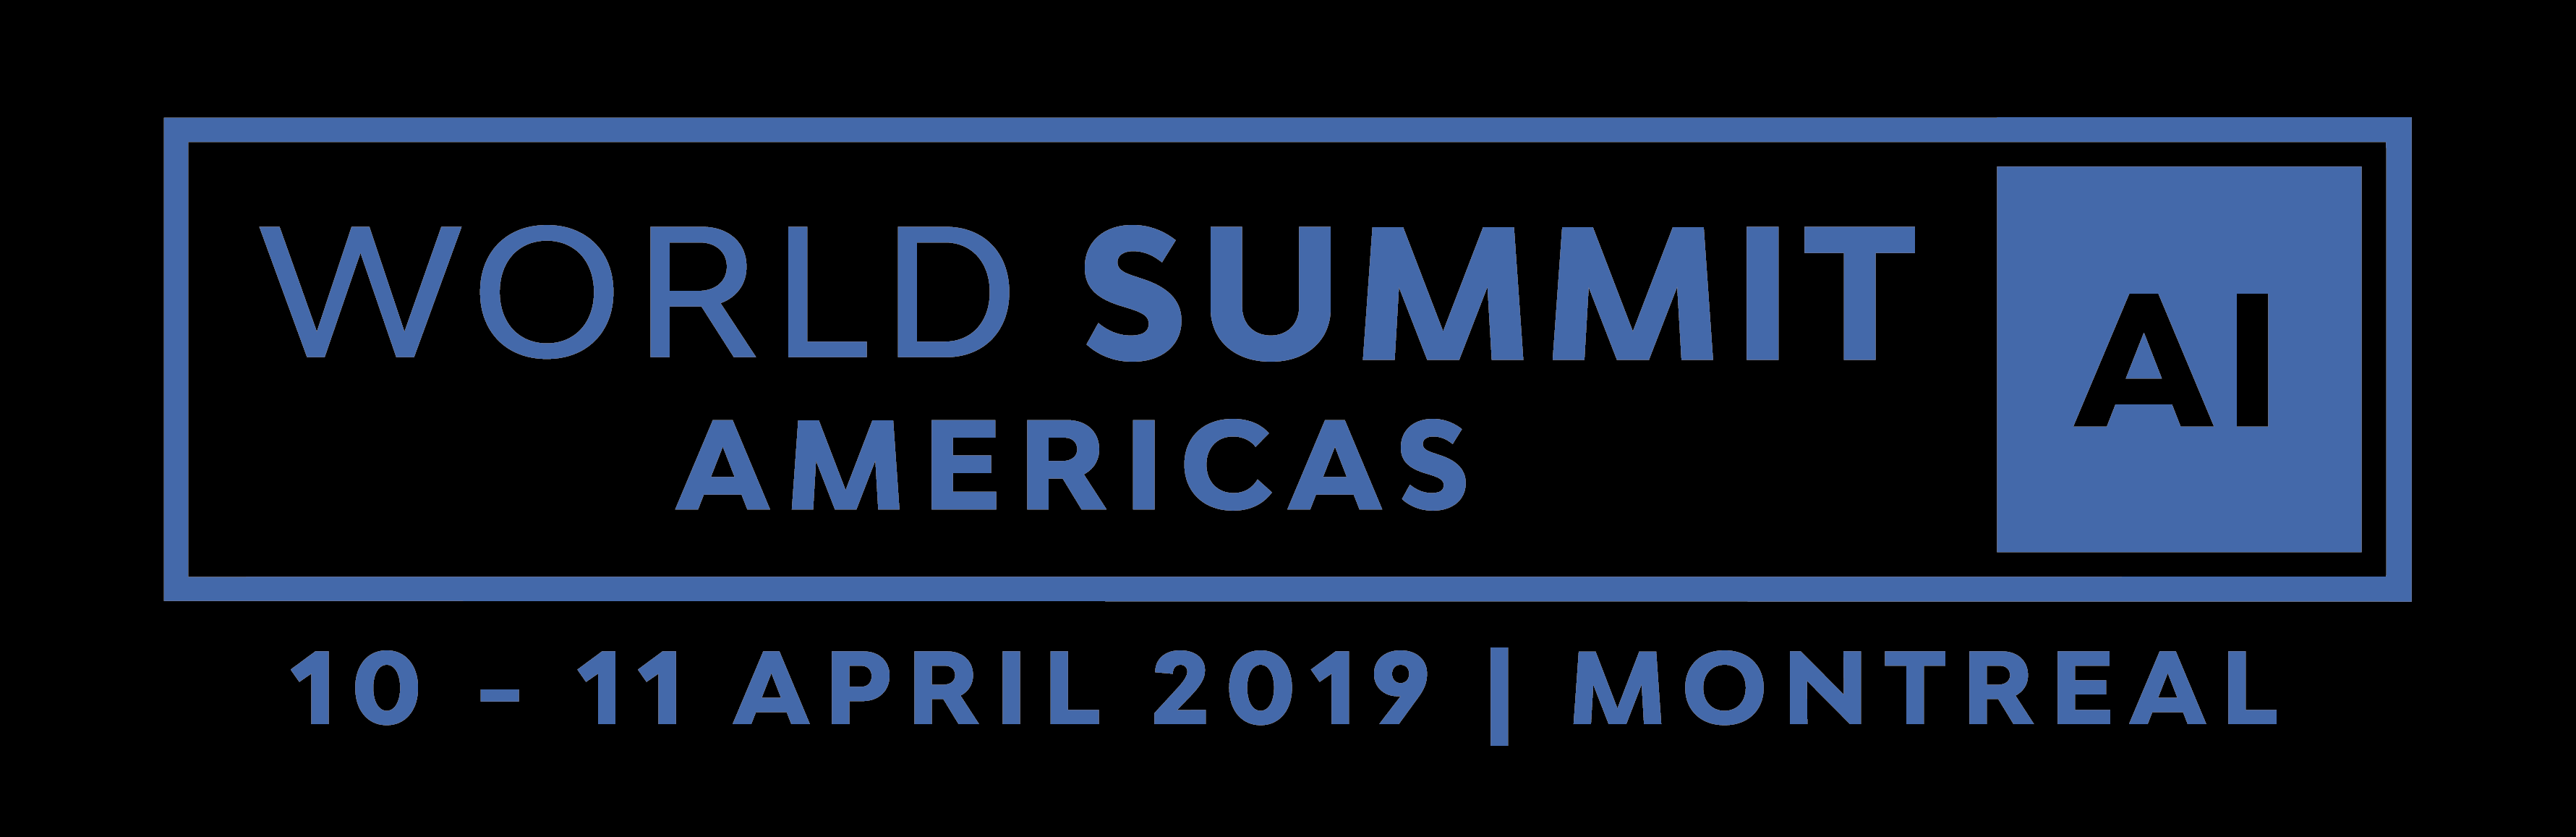 World Summit Americas